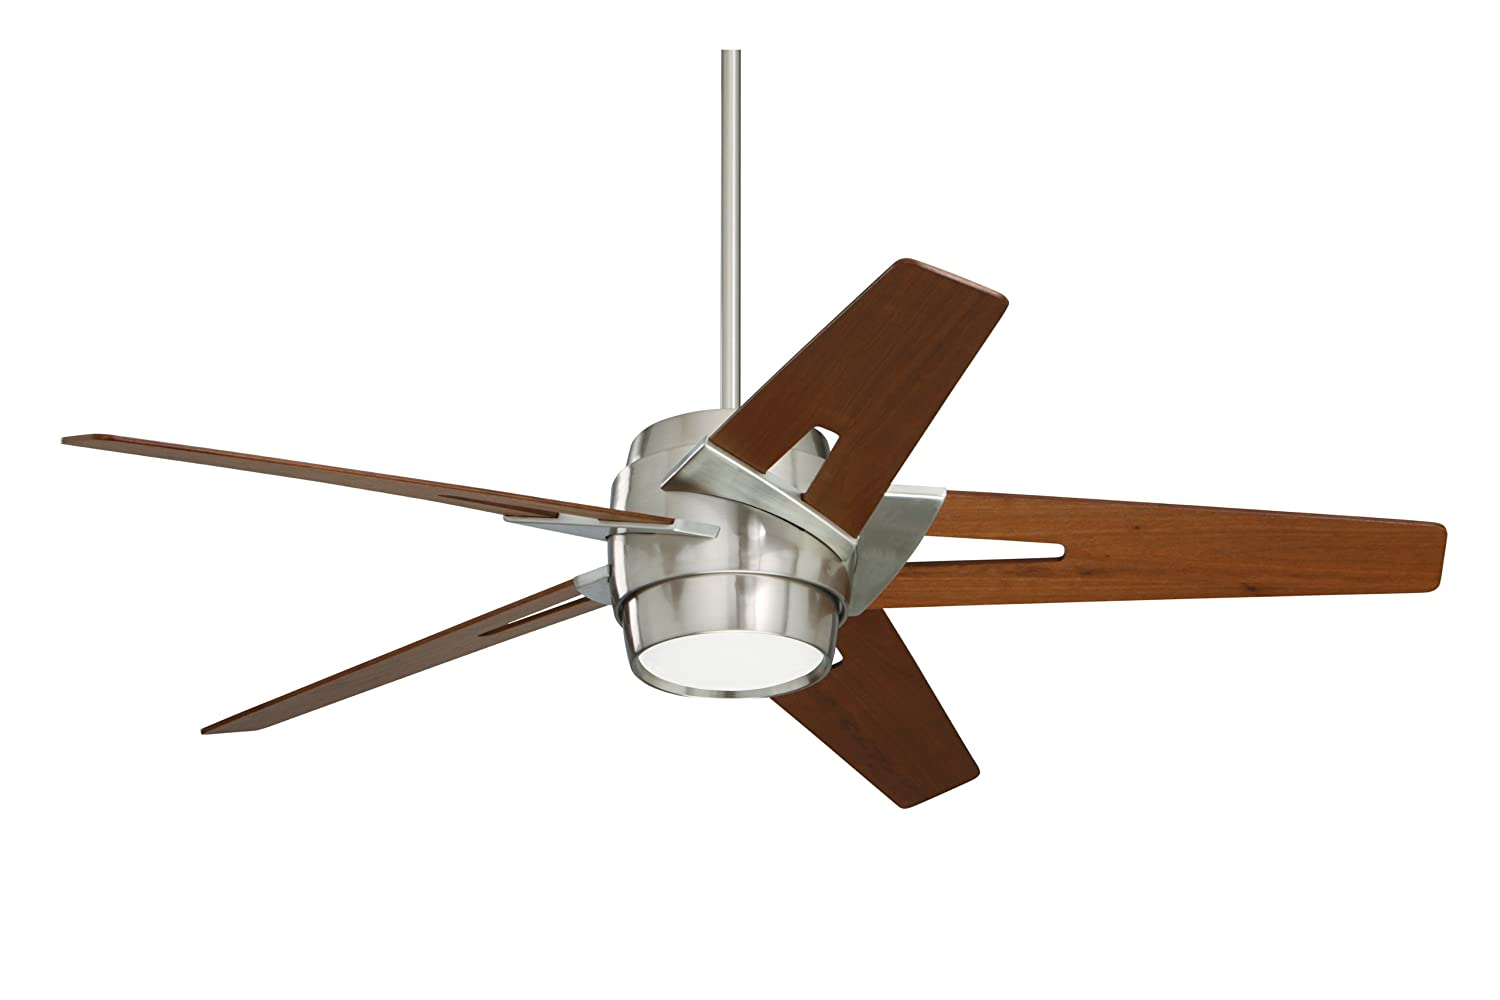 unique outdoor ceiling fans with lights cage emerson ceiling fans cf550wabs luxe eco modern fan with light and wall control 54inch blades brushed steel finish close to